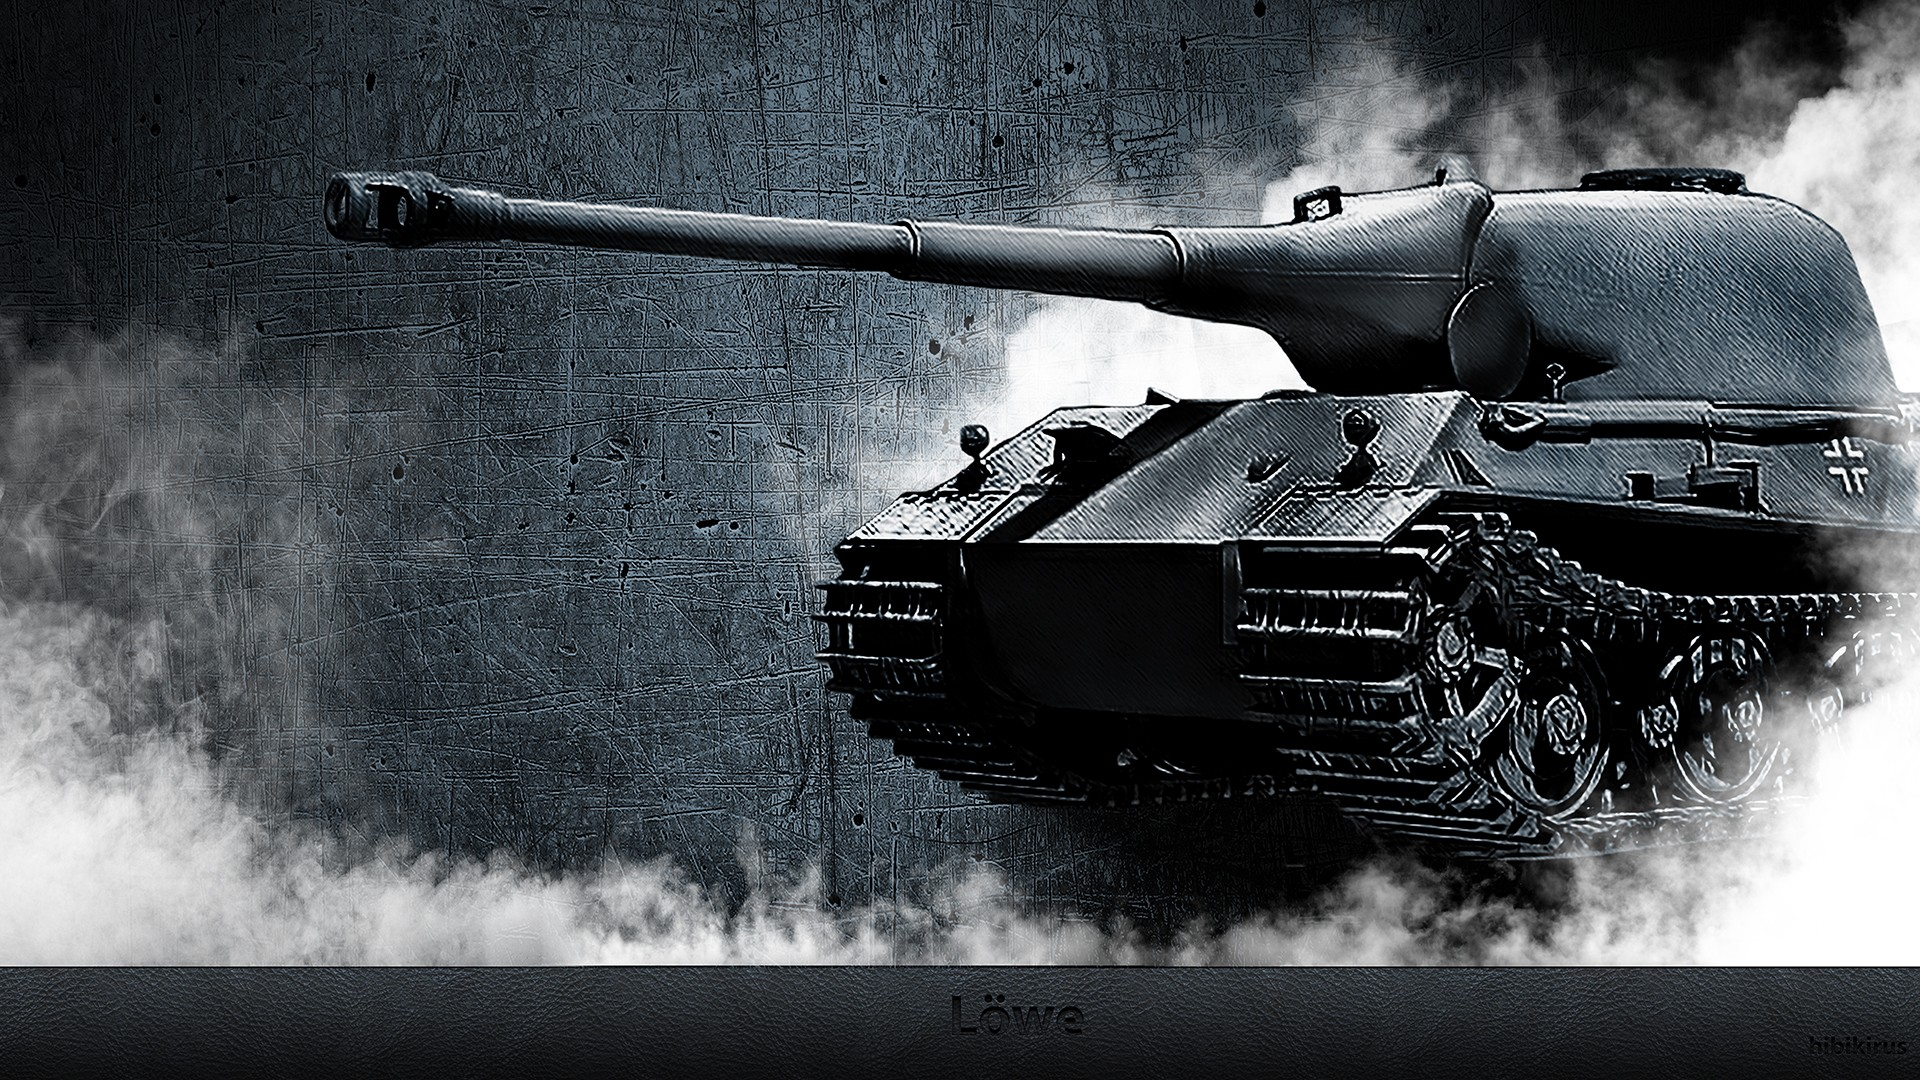 Best 51 World Of Tanks Desktop Backgrounds On Hipwallpaper Army